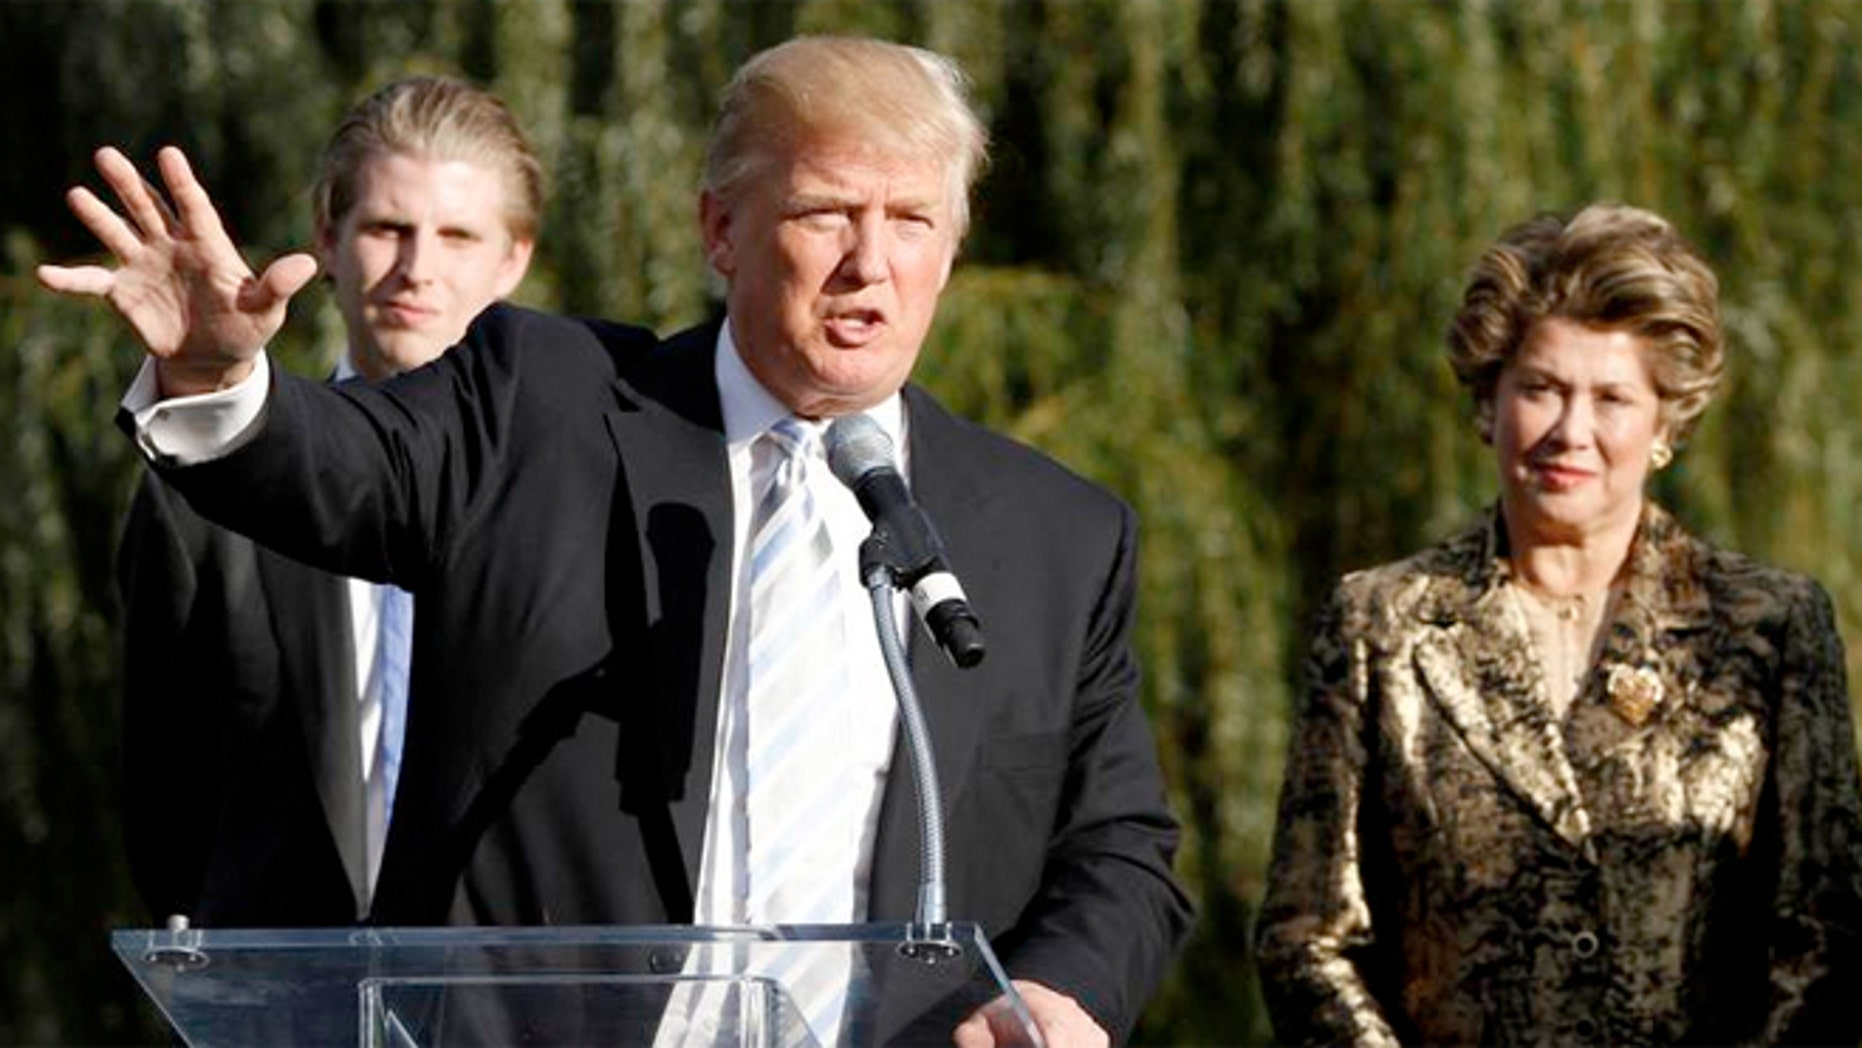 Donald Trump with Patricia Kluge, right,  during a press conference in Charlottesville, Va., after he purchased the wine estate from the former socialite.